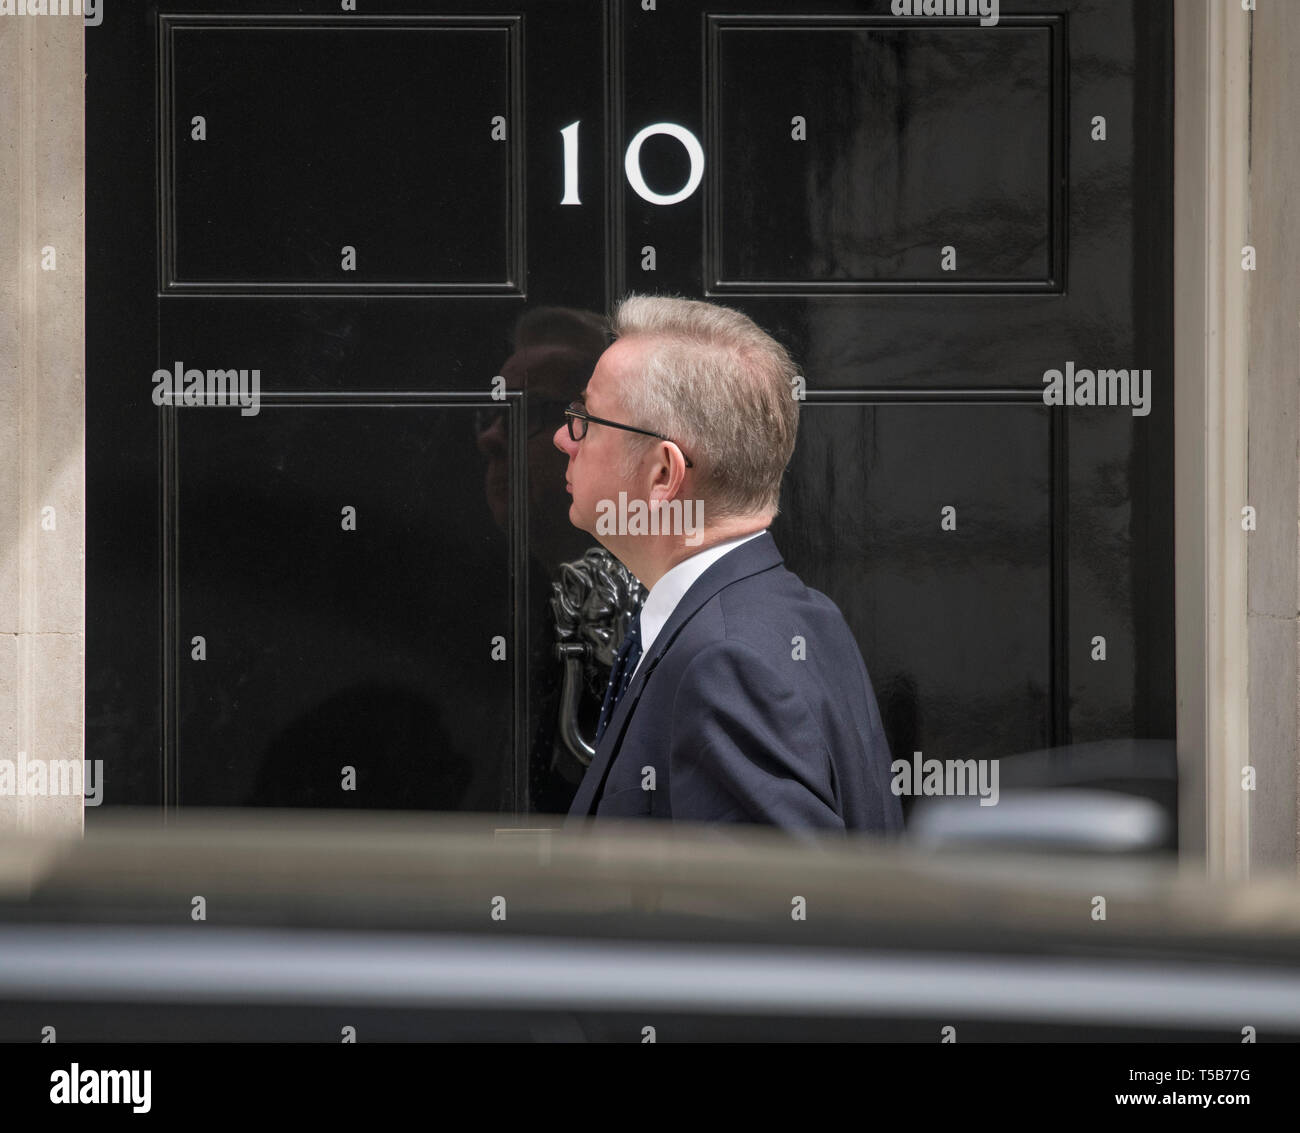 Downing Street, London, UK. 23rd April 2019. Michael Gove, Environment Secretary, Secretary of State for Environment Food and Rural Affairs, in Downing Street for weekly cabinet meeting. Credit: Malcolm Park/Alamy Live News. Stock Photo